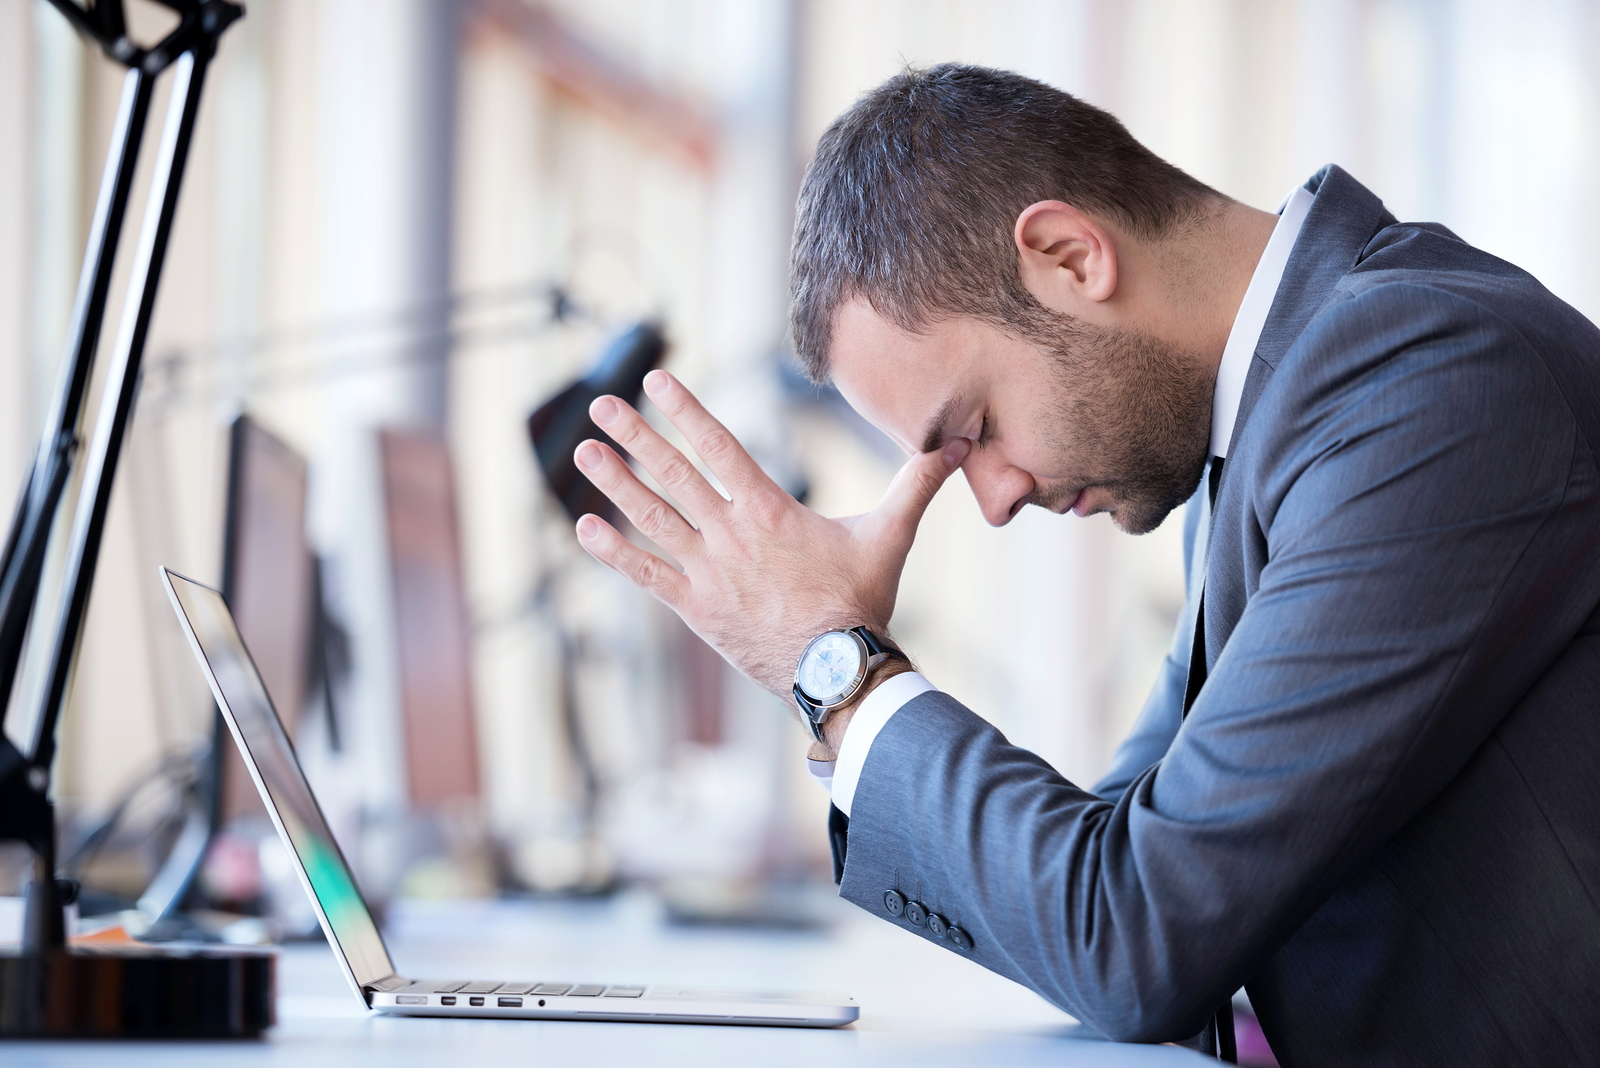 Man in business suit with closed eyes and head in hands in front of laptop worried about his dental website agency.